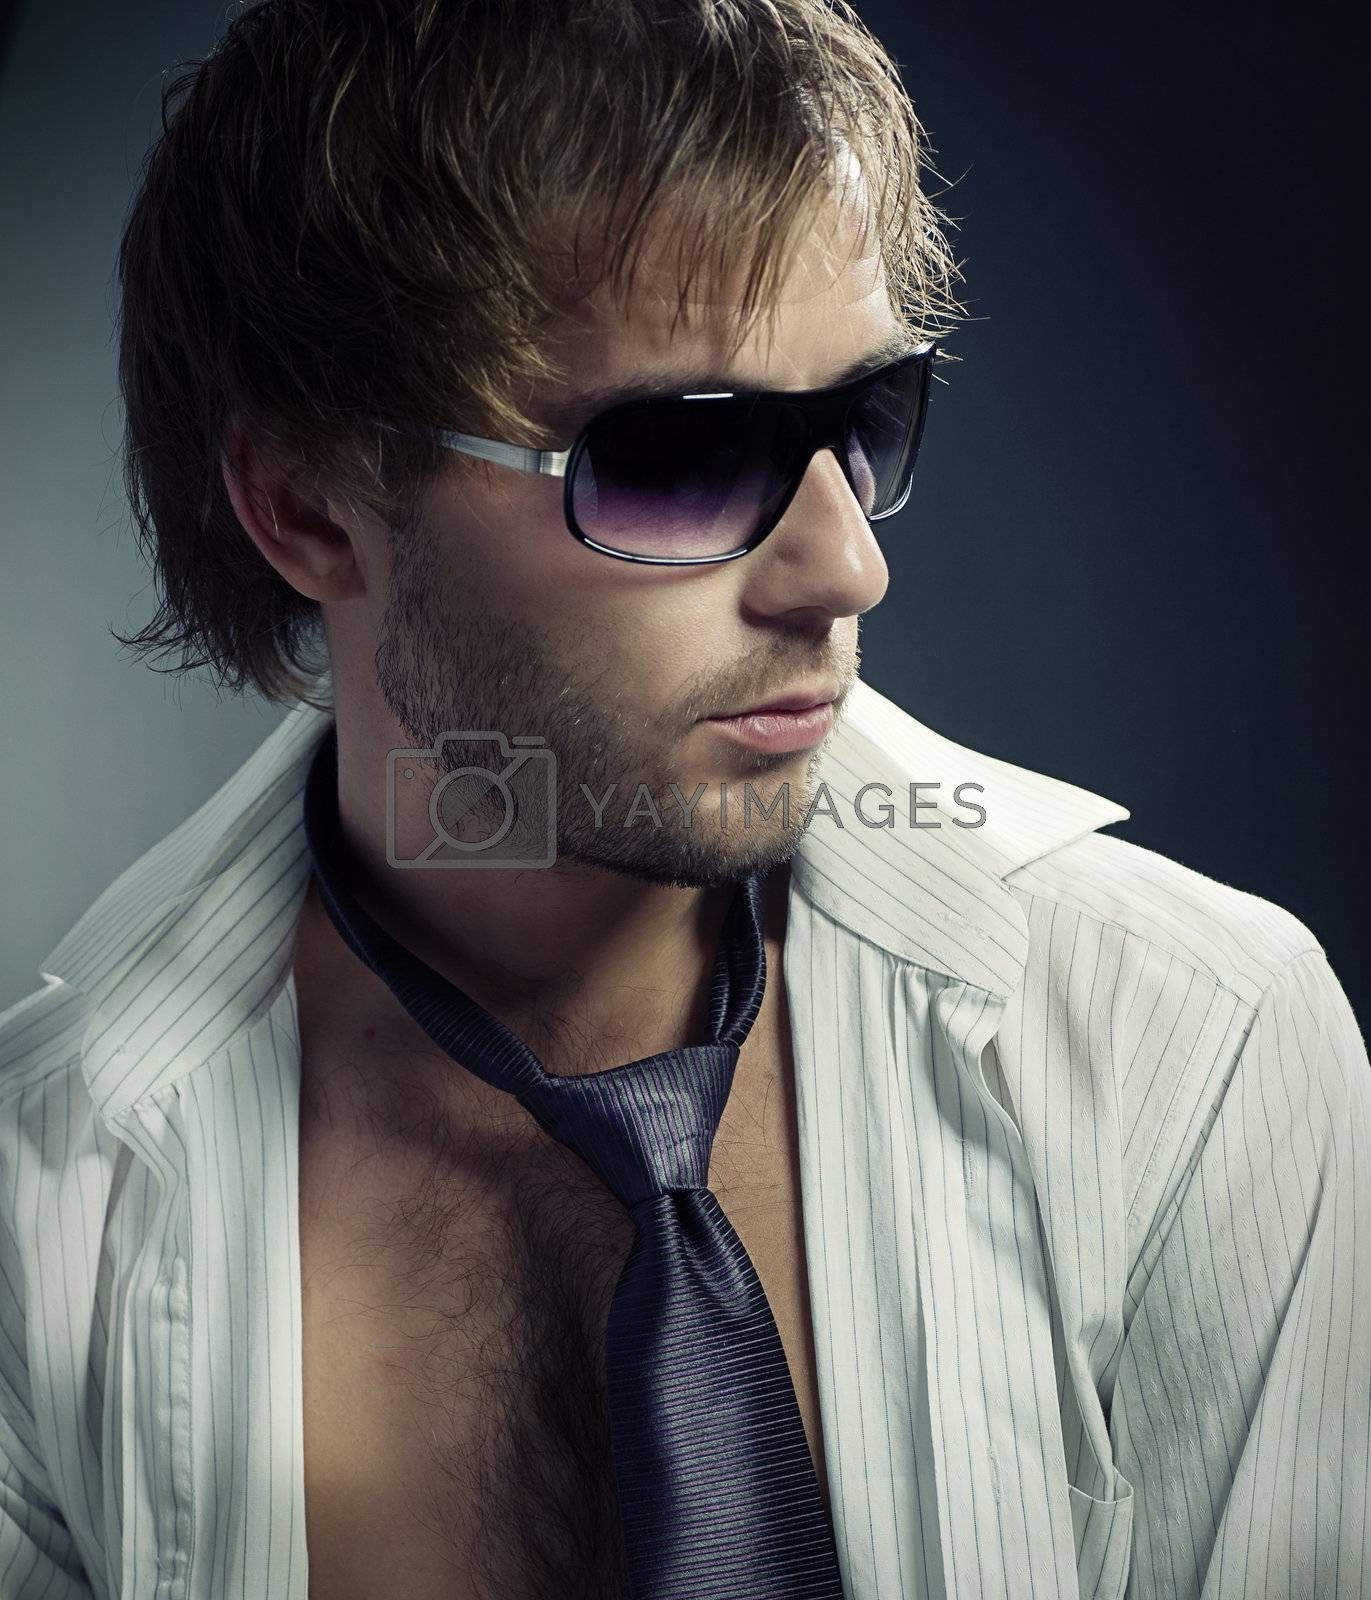 Stylish fashion young Man portrait